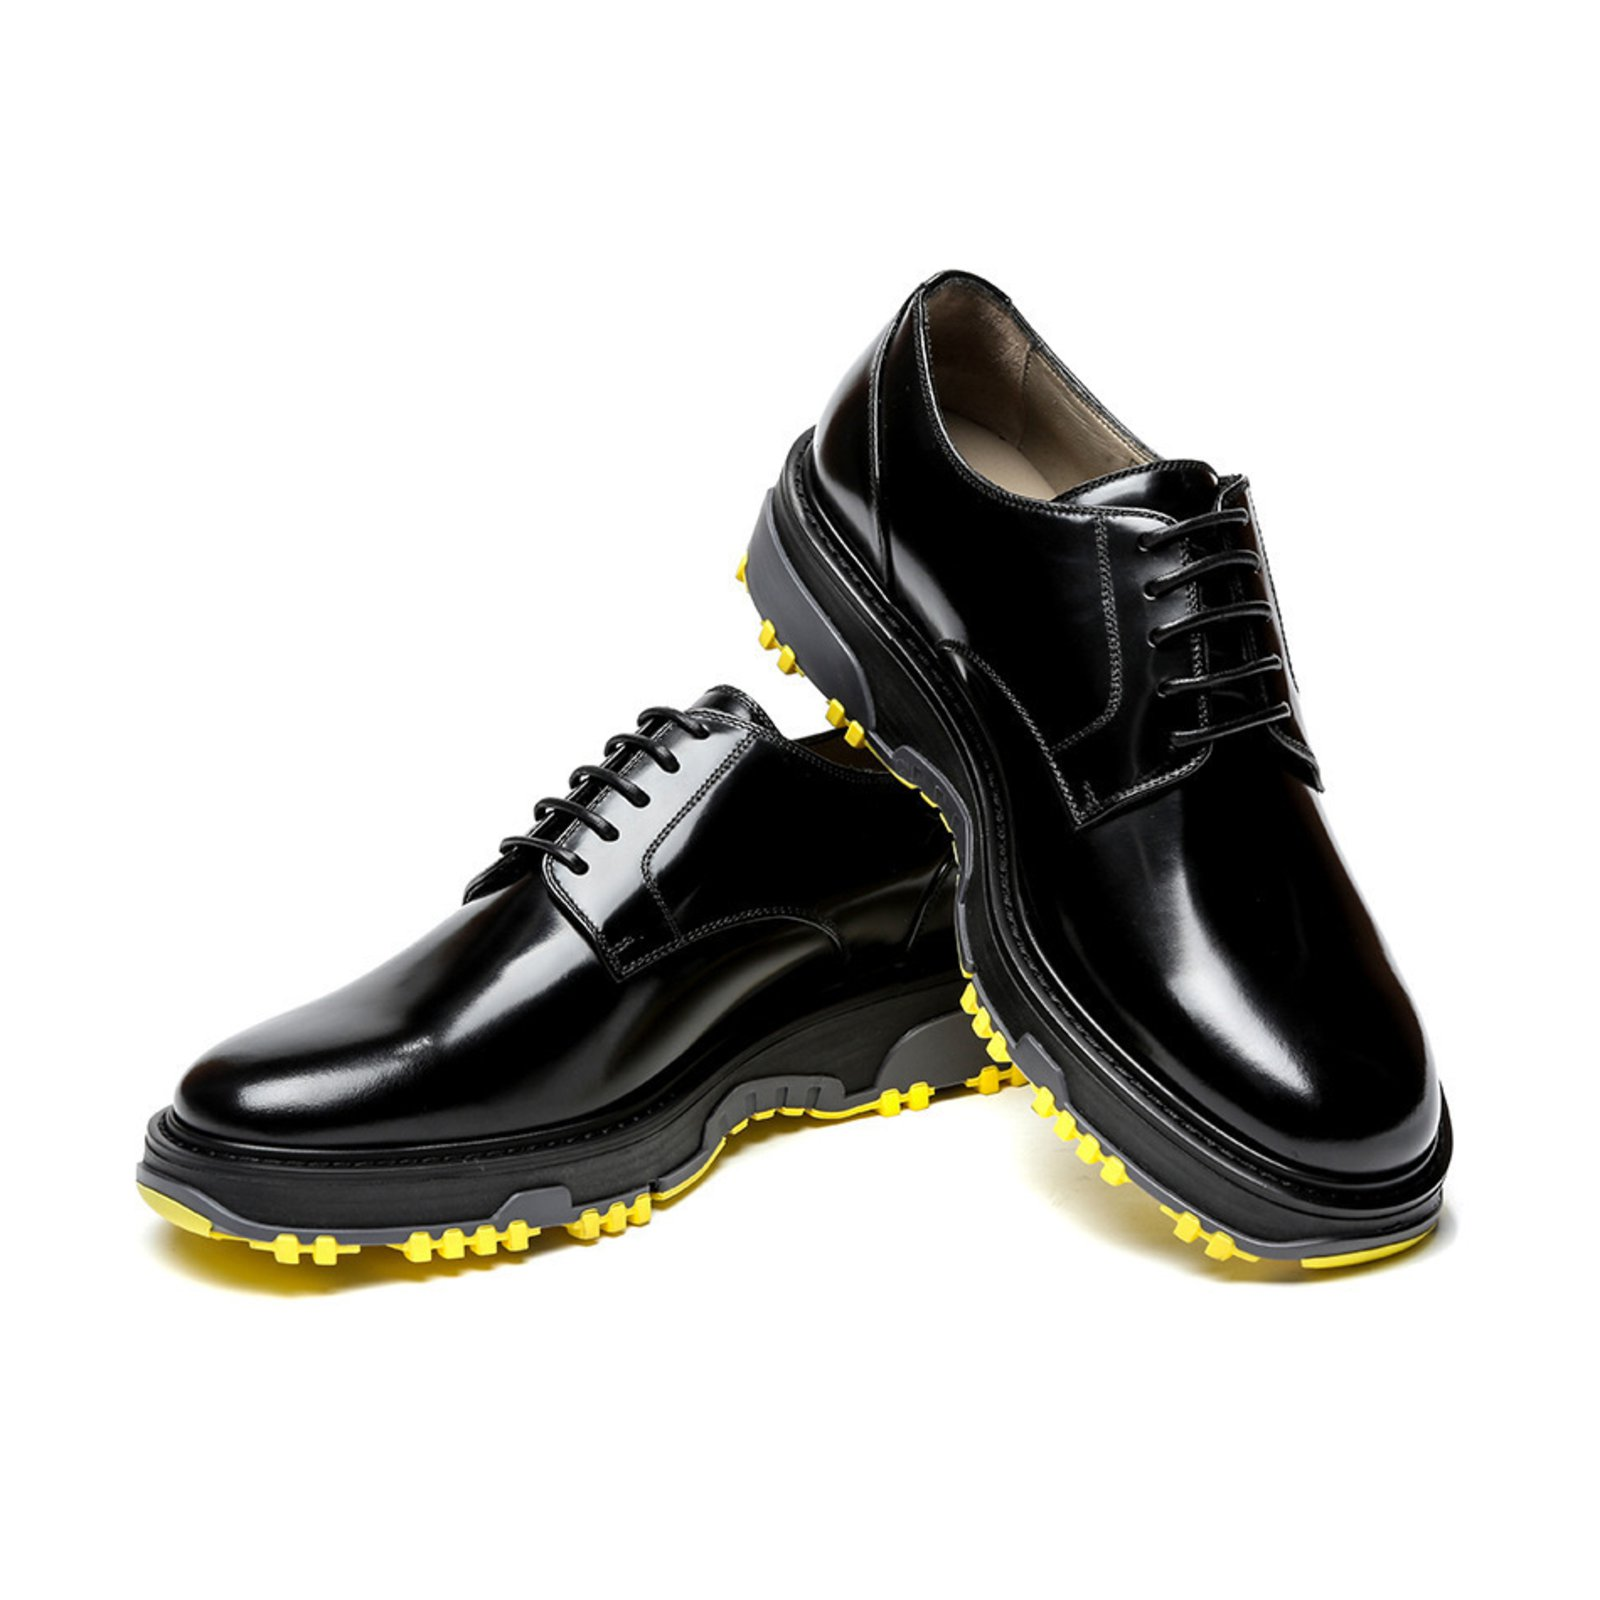 54b75e0bfb8e Christian Dior shoes cristian dior nuove never worn size 43 Sneakers  Leather Black ref.51204